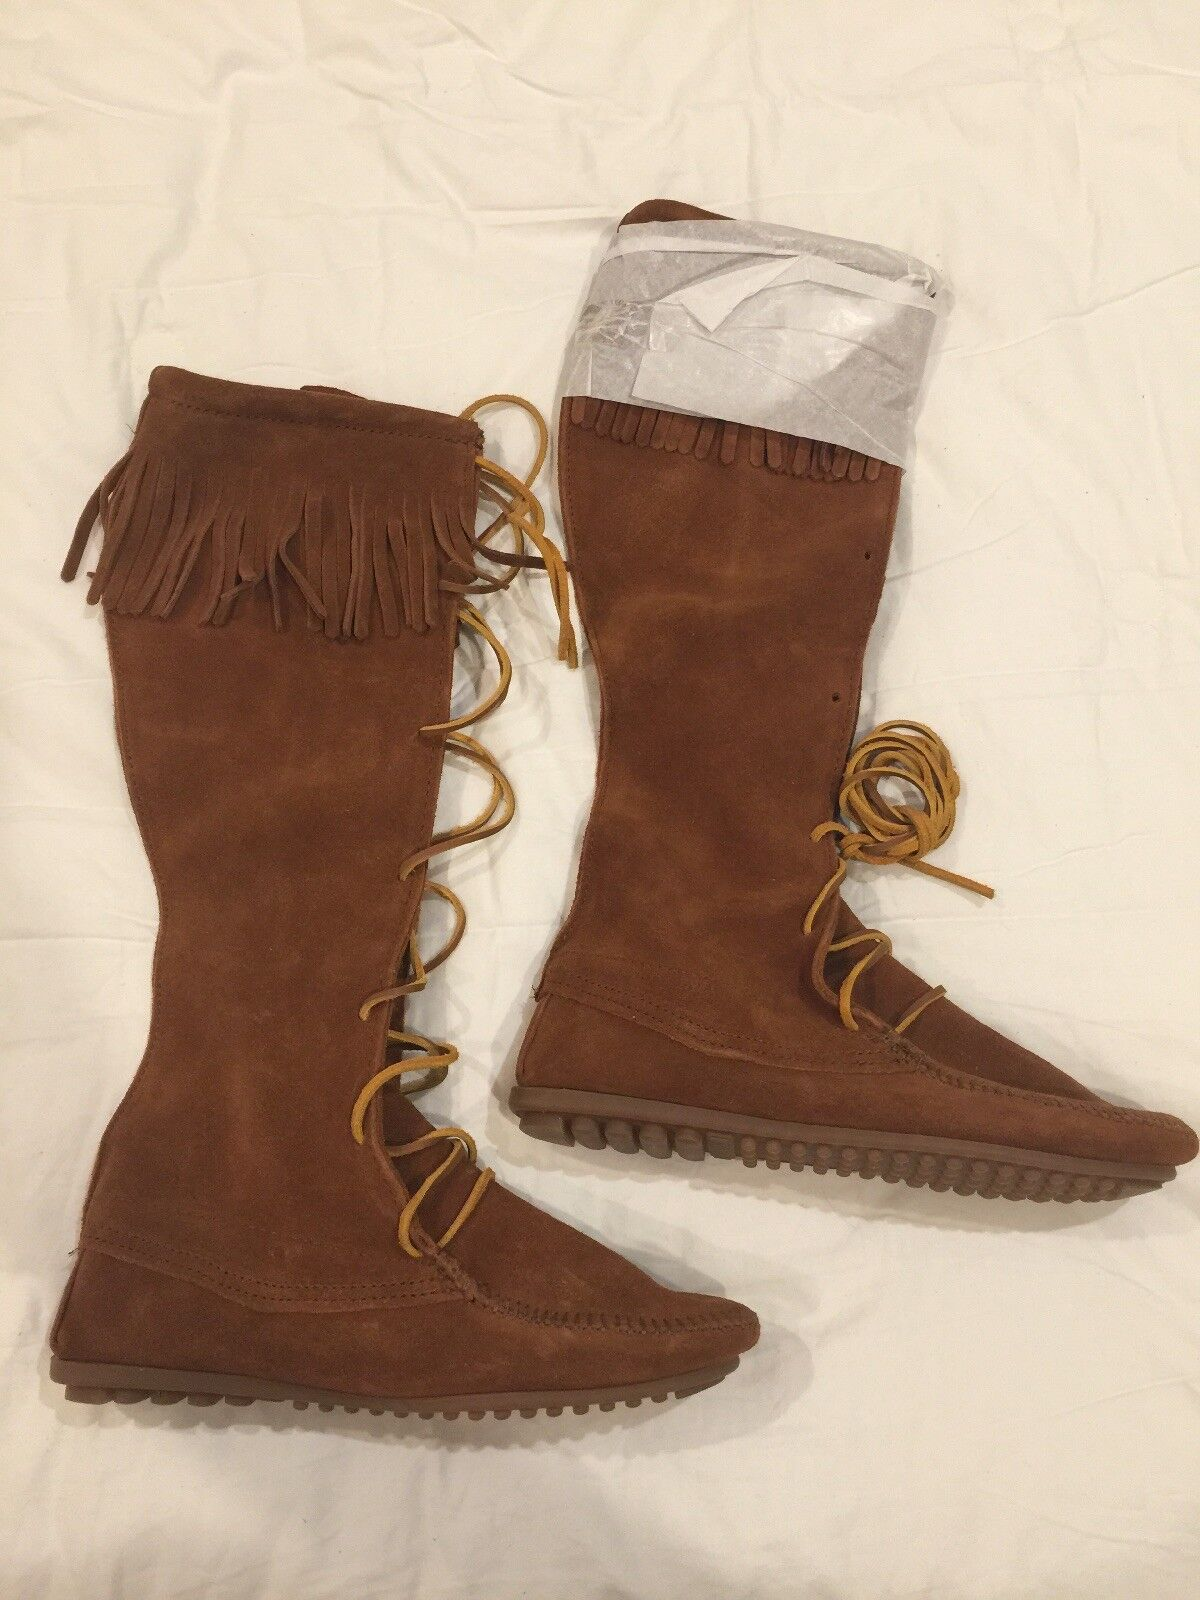 Minnetonka Front Lace Knee High avvio 8 Marroneee NEW IN BOX